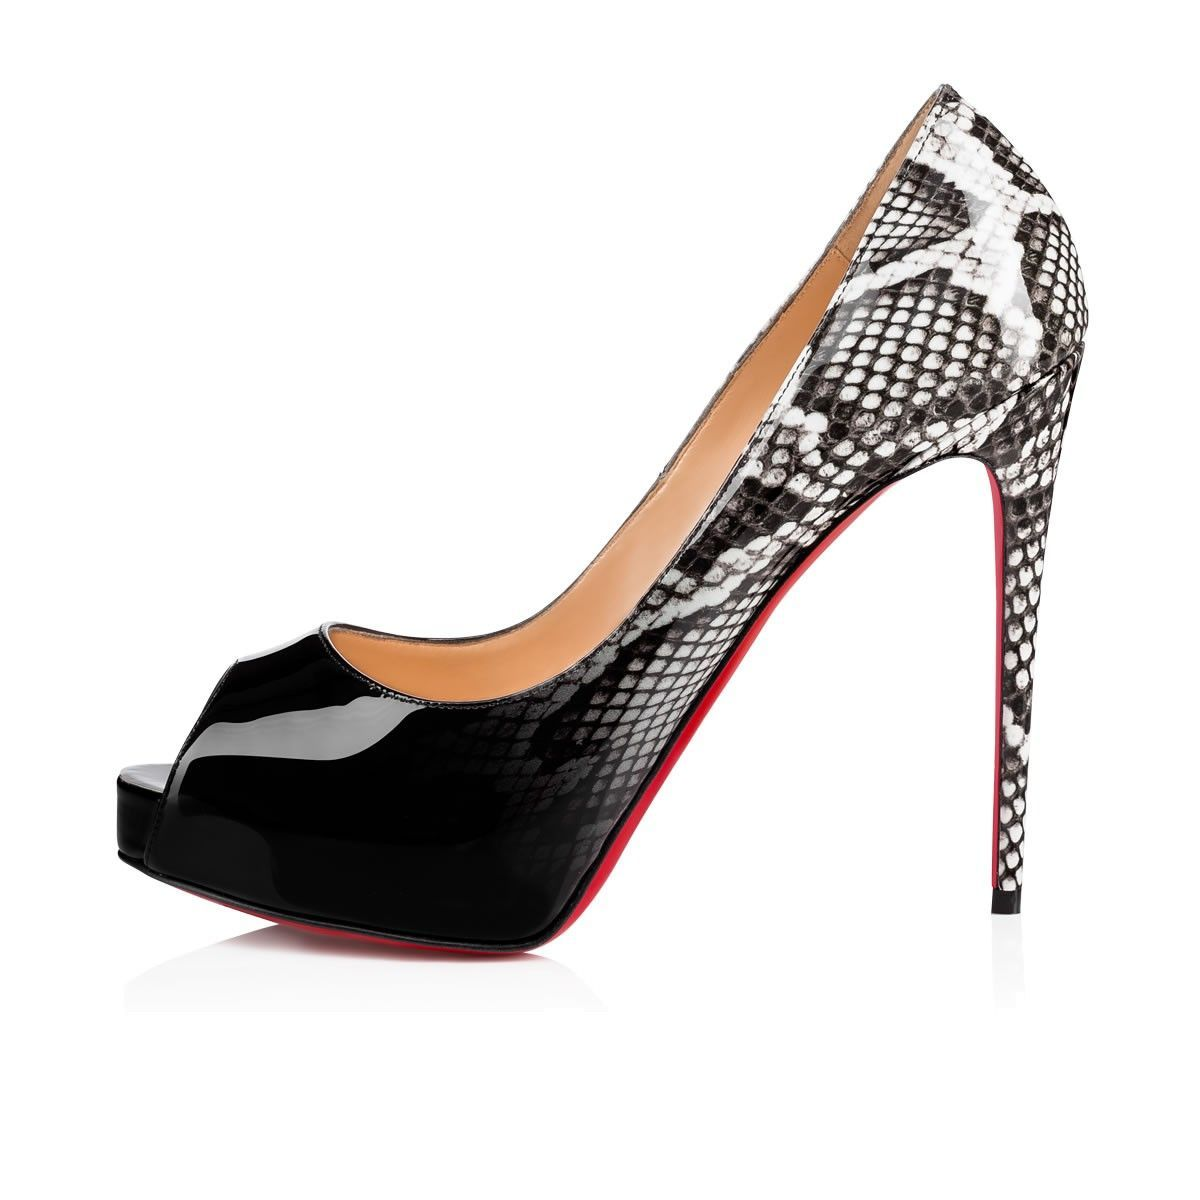 a9c855ae17d Shoes - New Very Prive Patent Degrade Roccia - Christian Louboutin